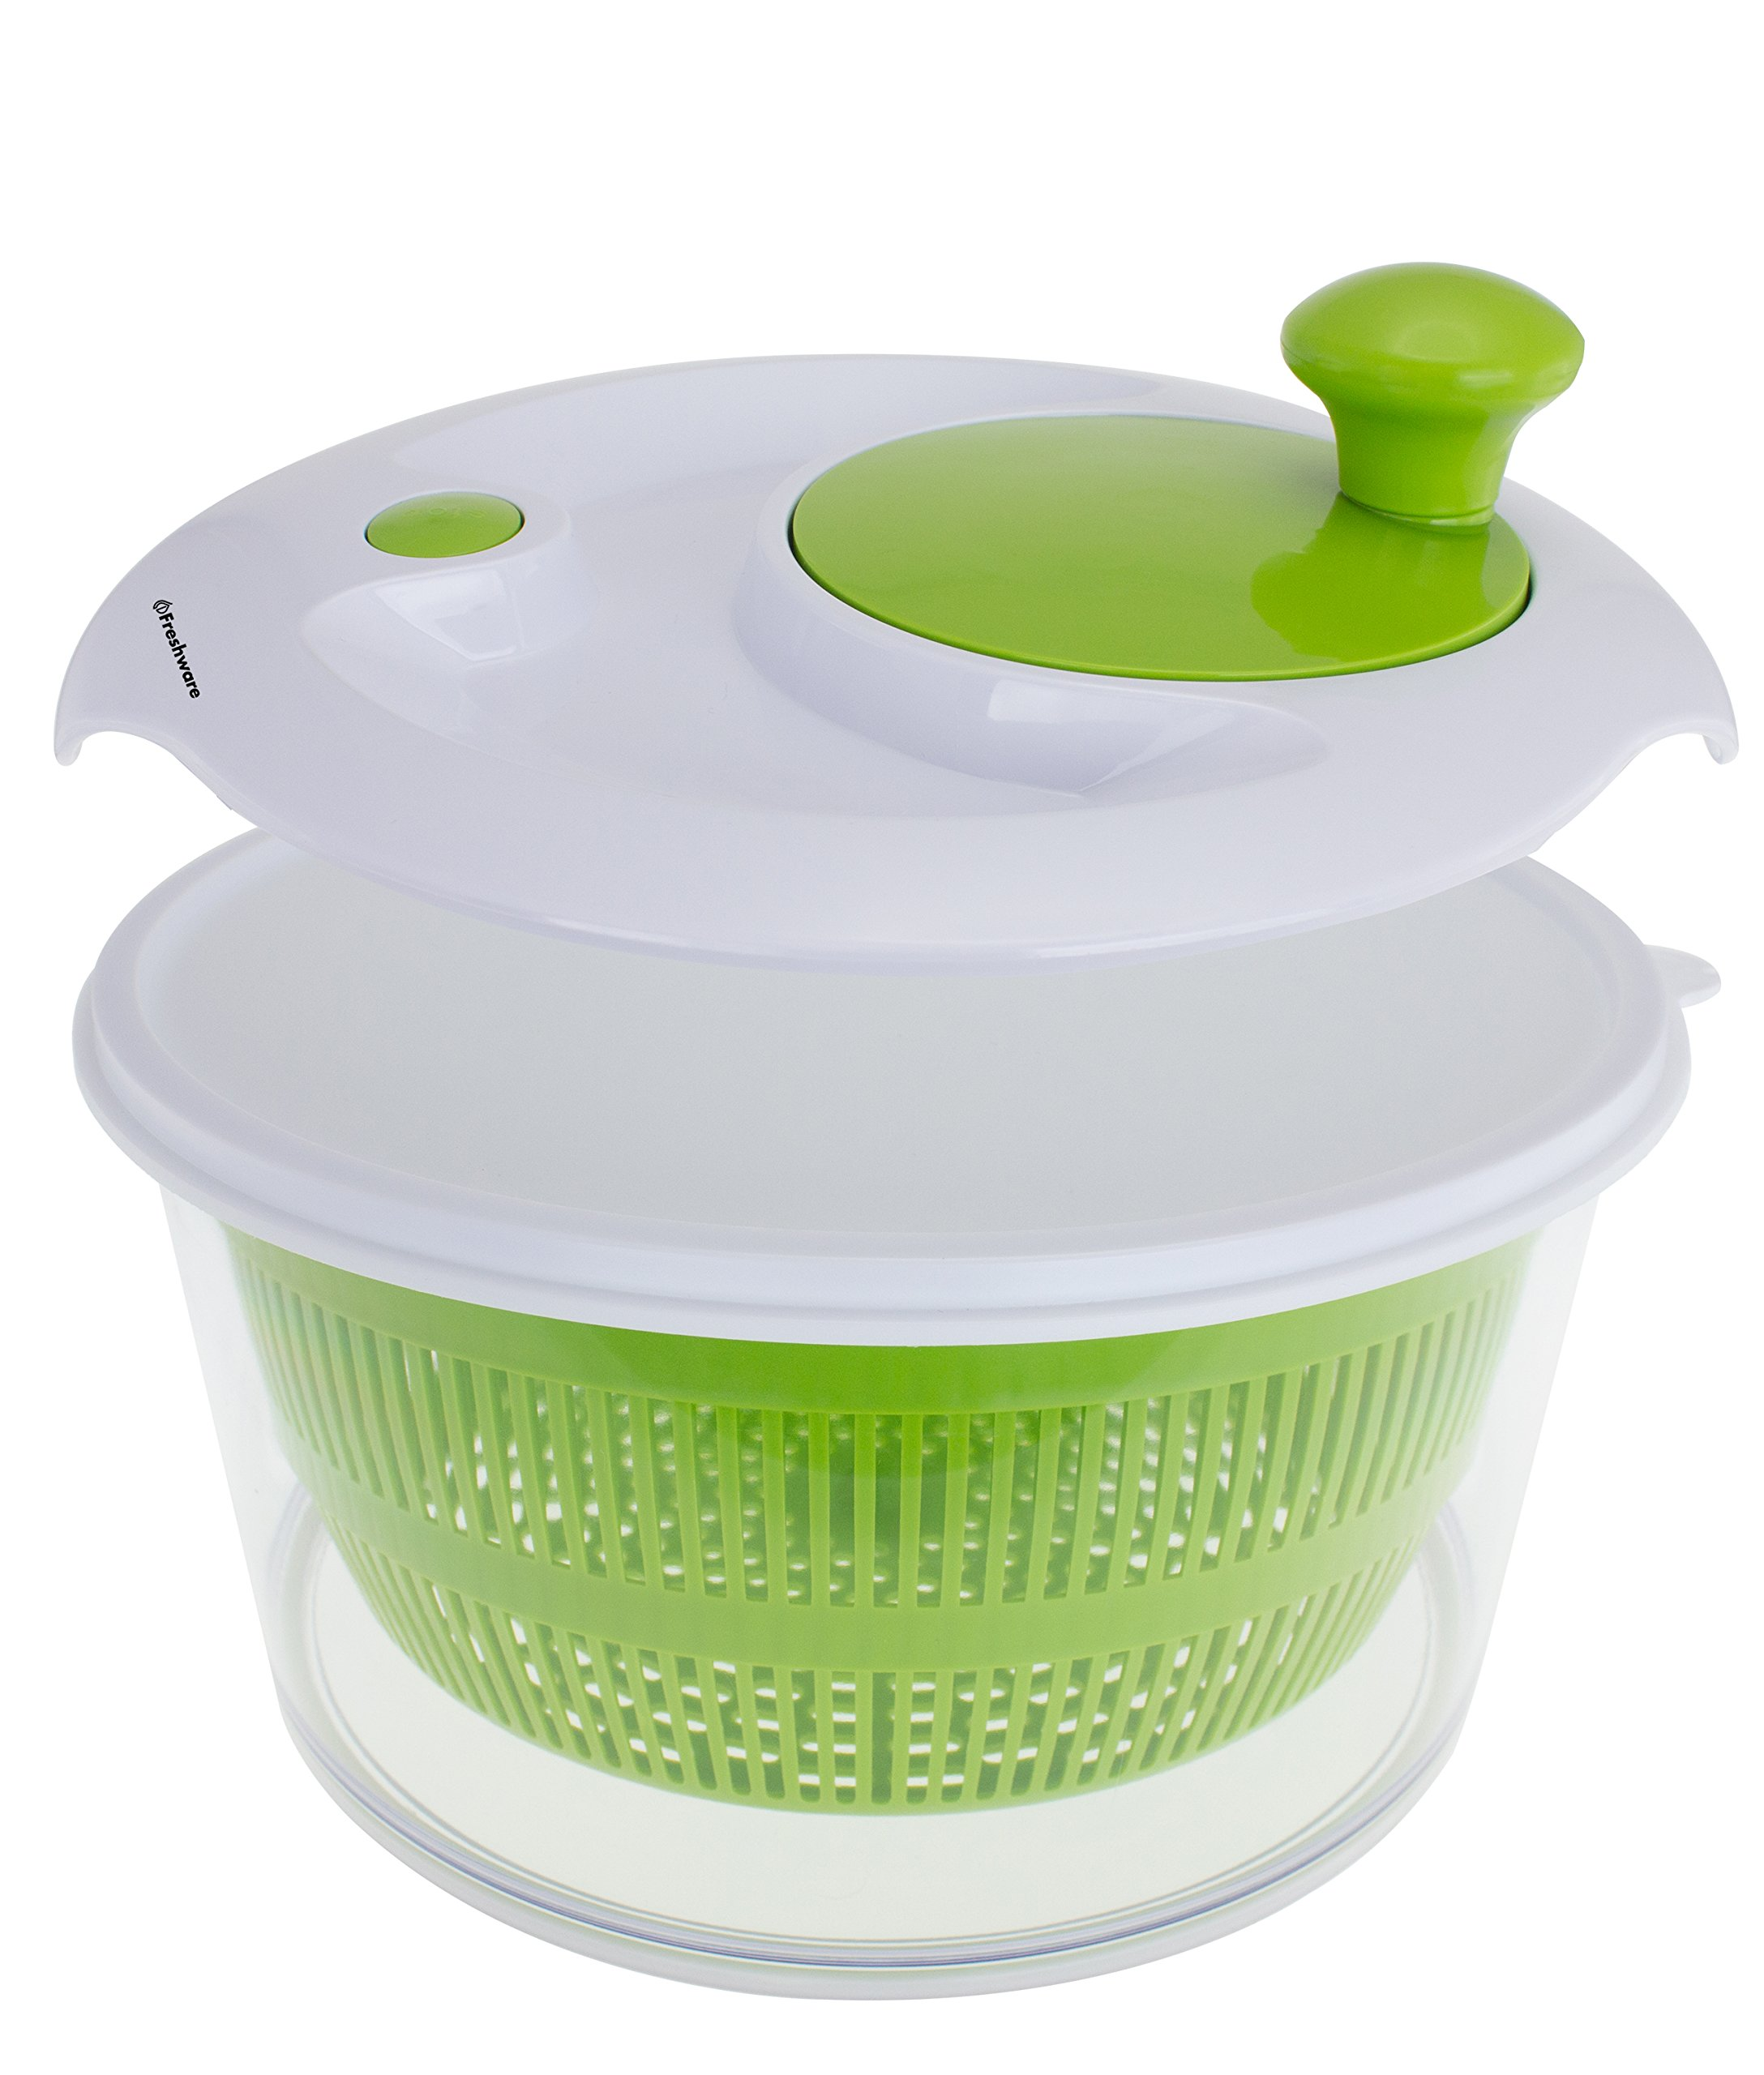 Freshware KT-503 Salad Spinner with Storage Lid by Freshware